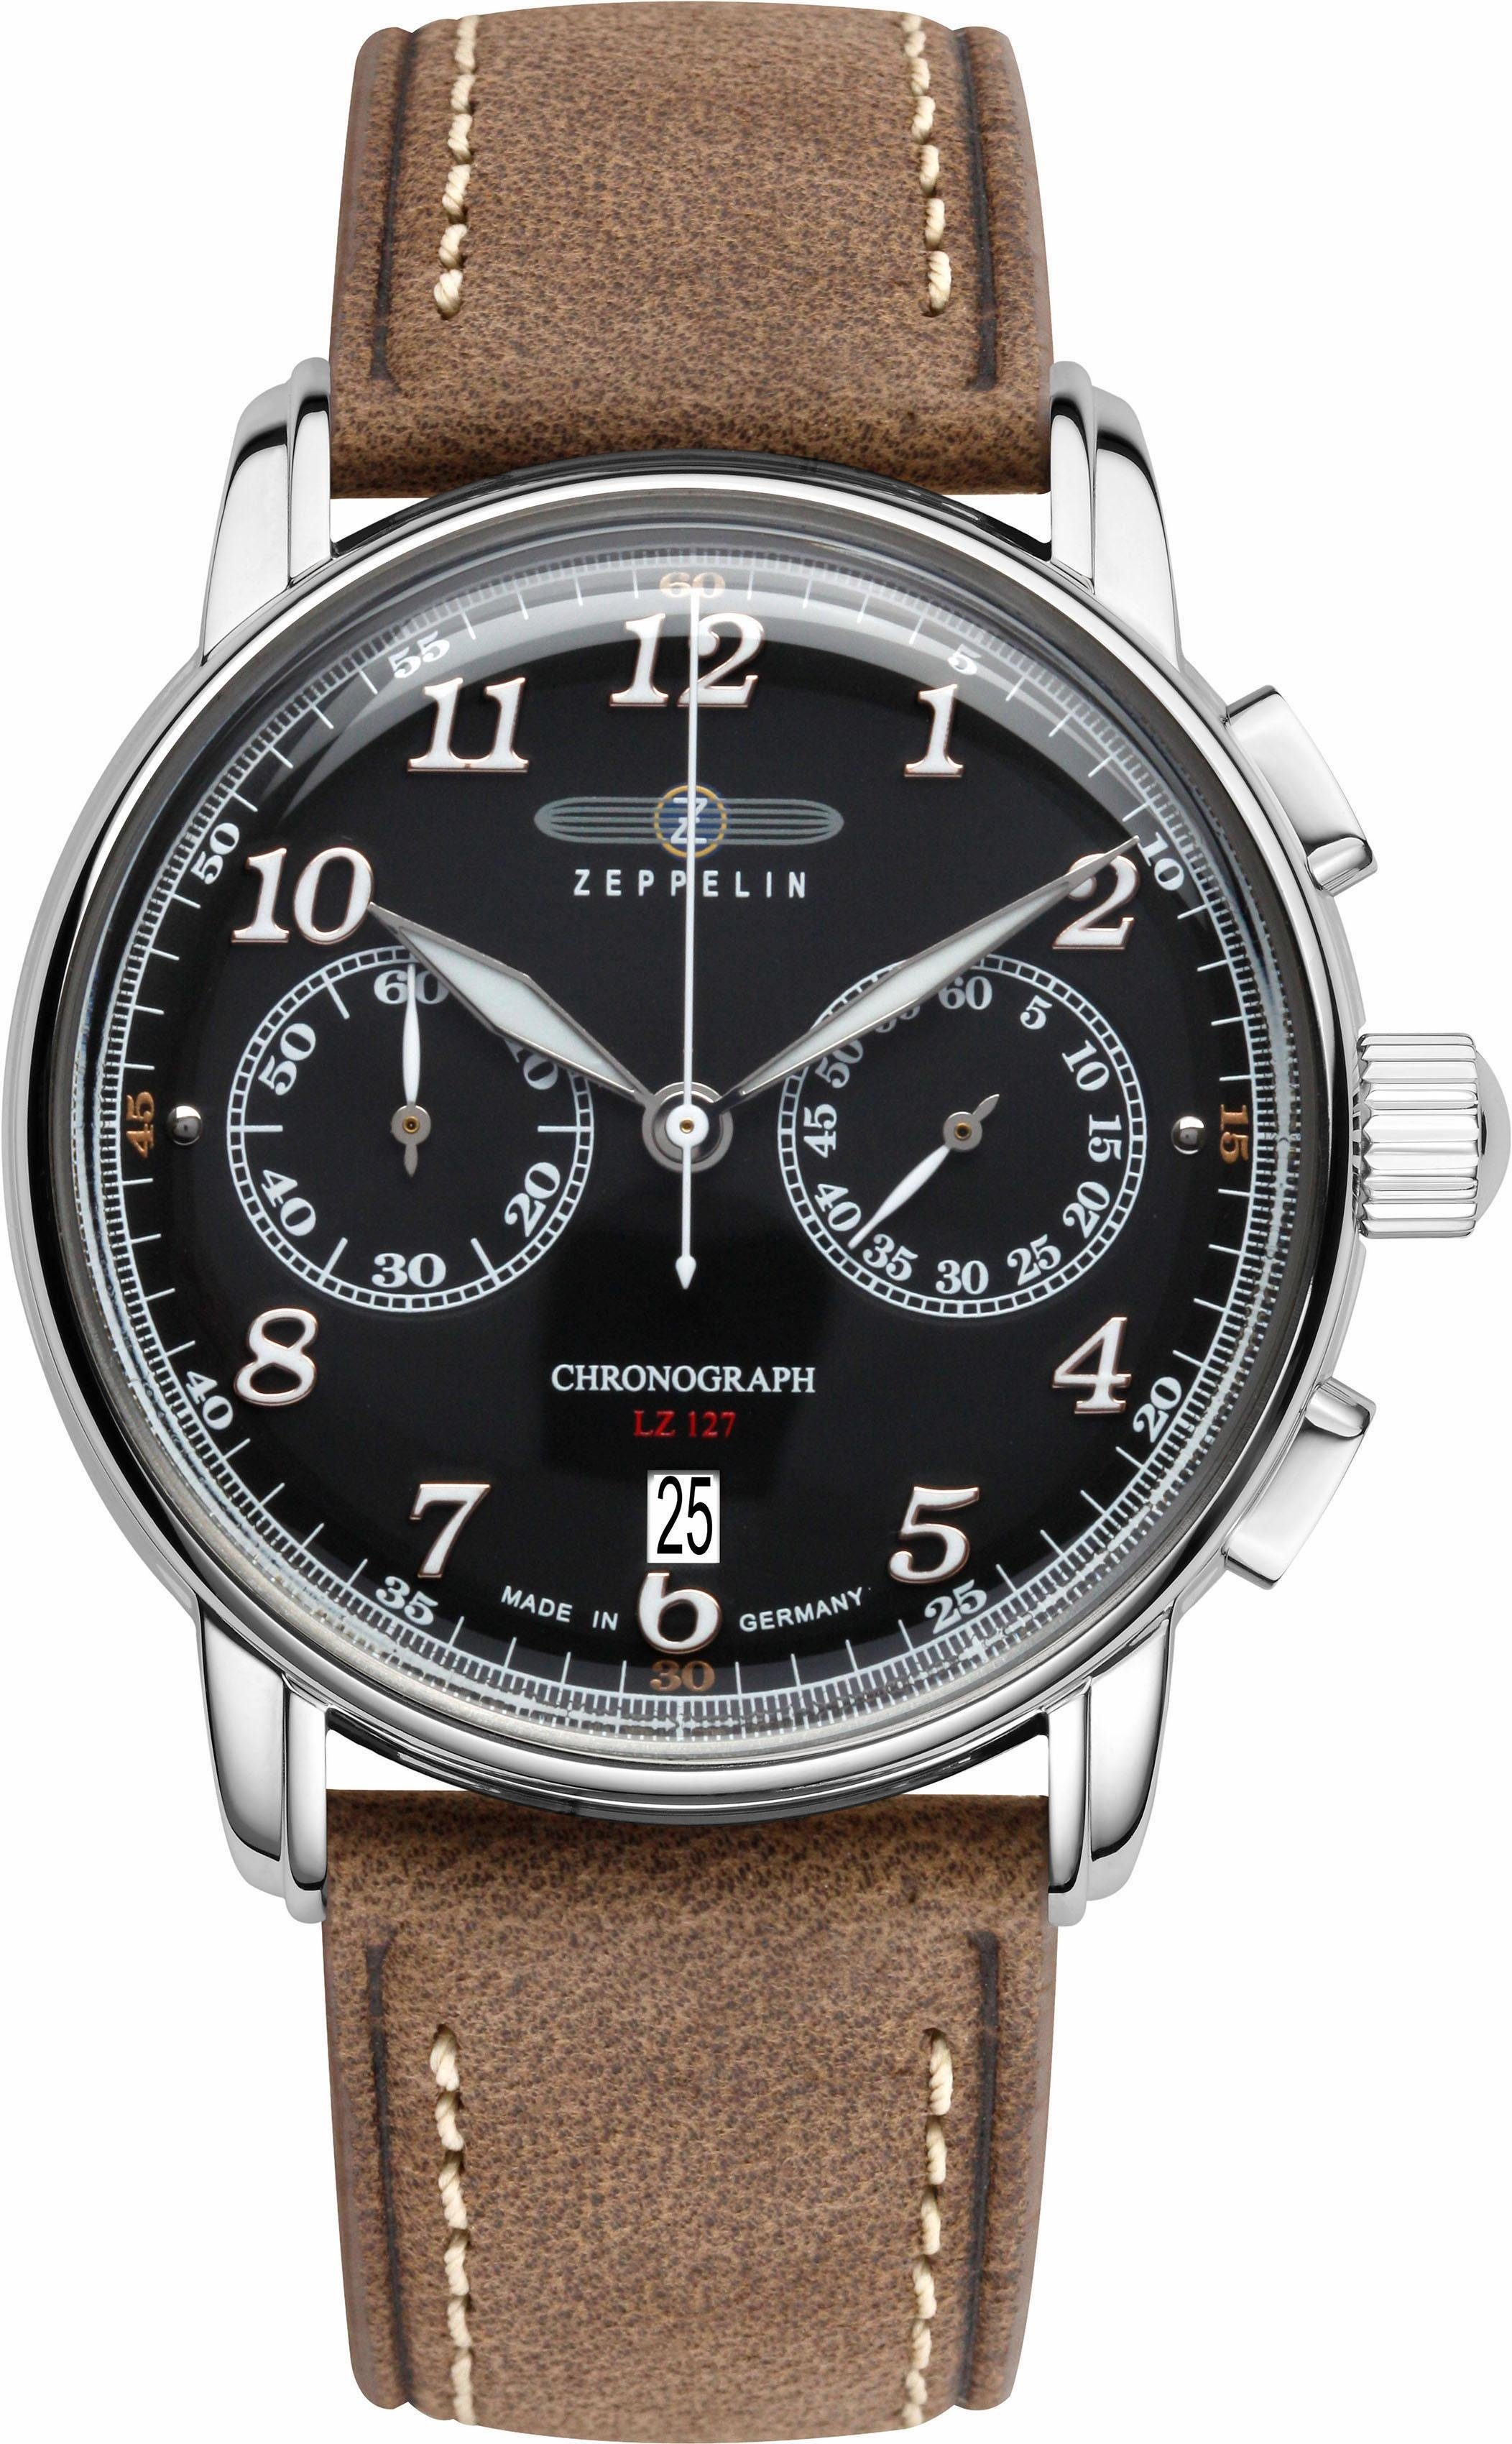 ZEPPELIN Chronograph »LZ 127 Graf Zeppelin, 86782« made in Germany